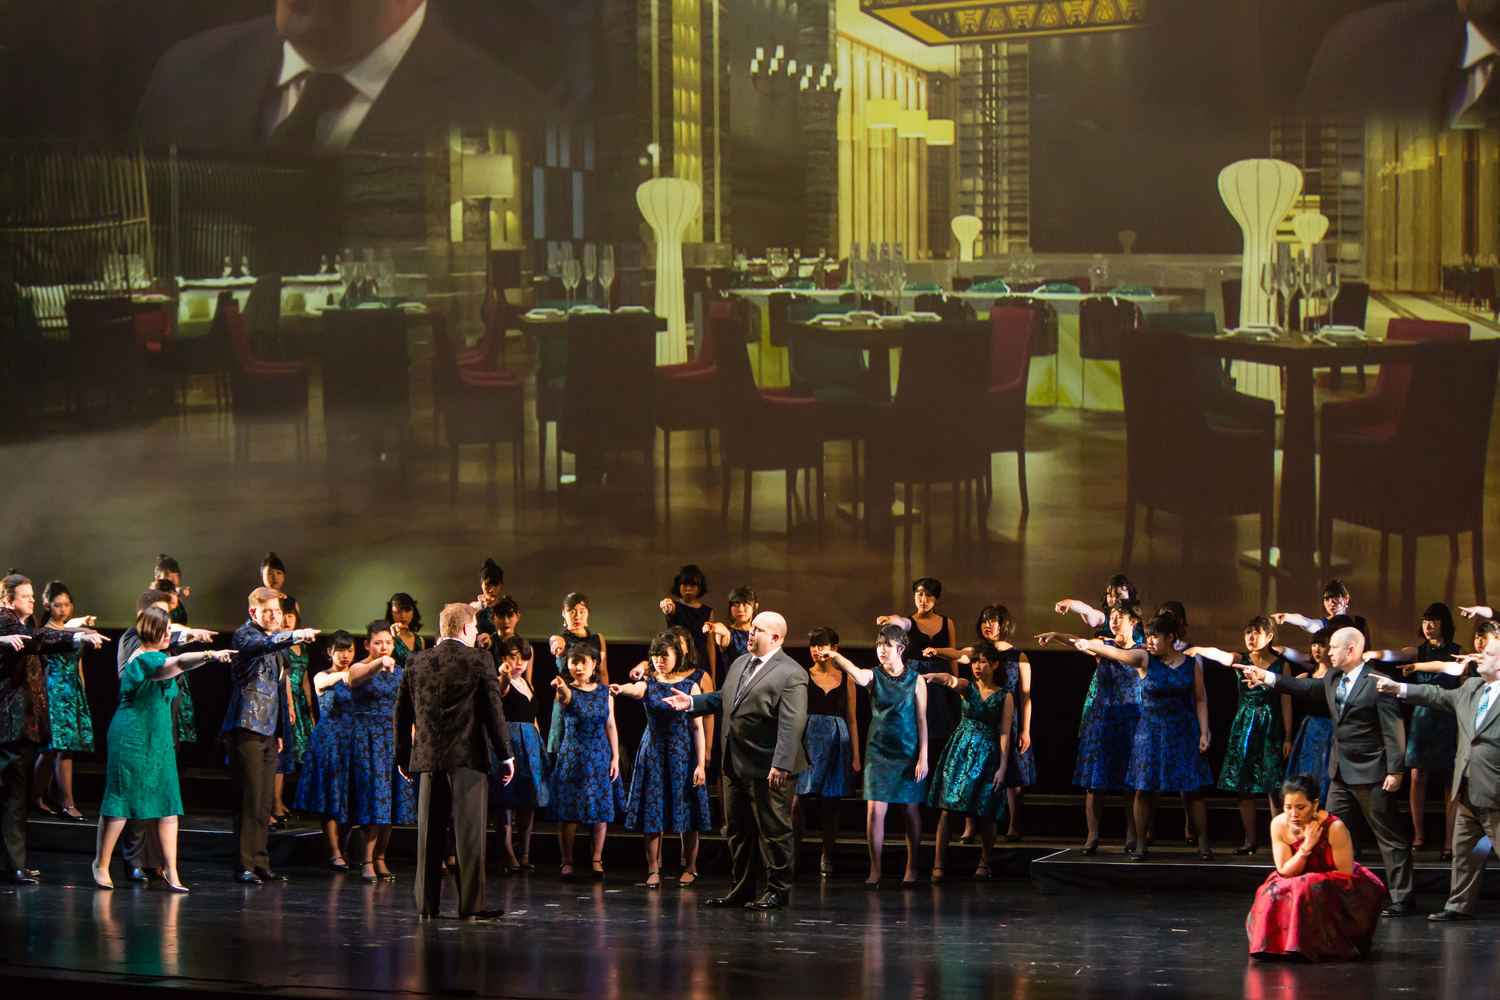 BWW Review: LA TRAVIATA with Philharmonia Orchestra Of New York - Innovation for Innovation's Sake